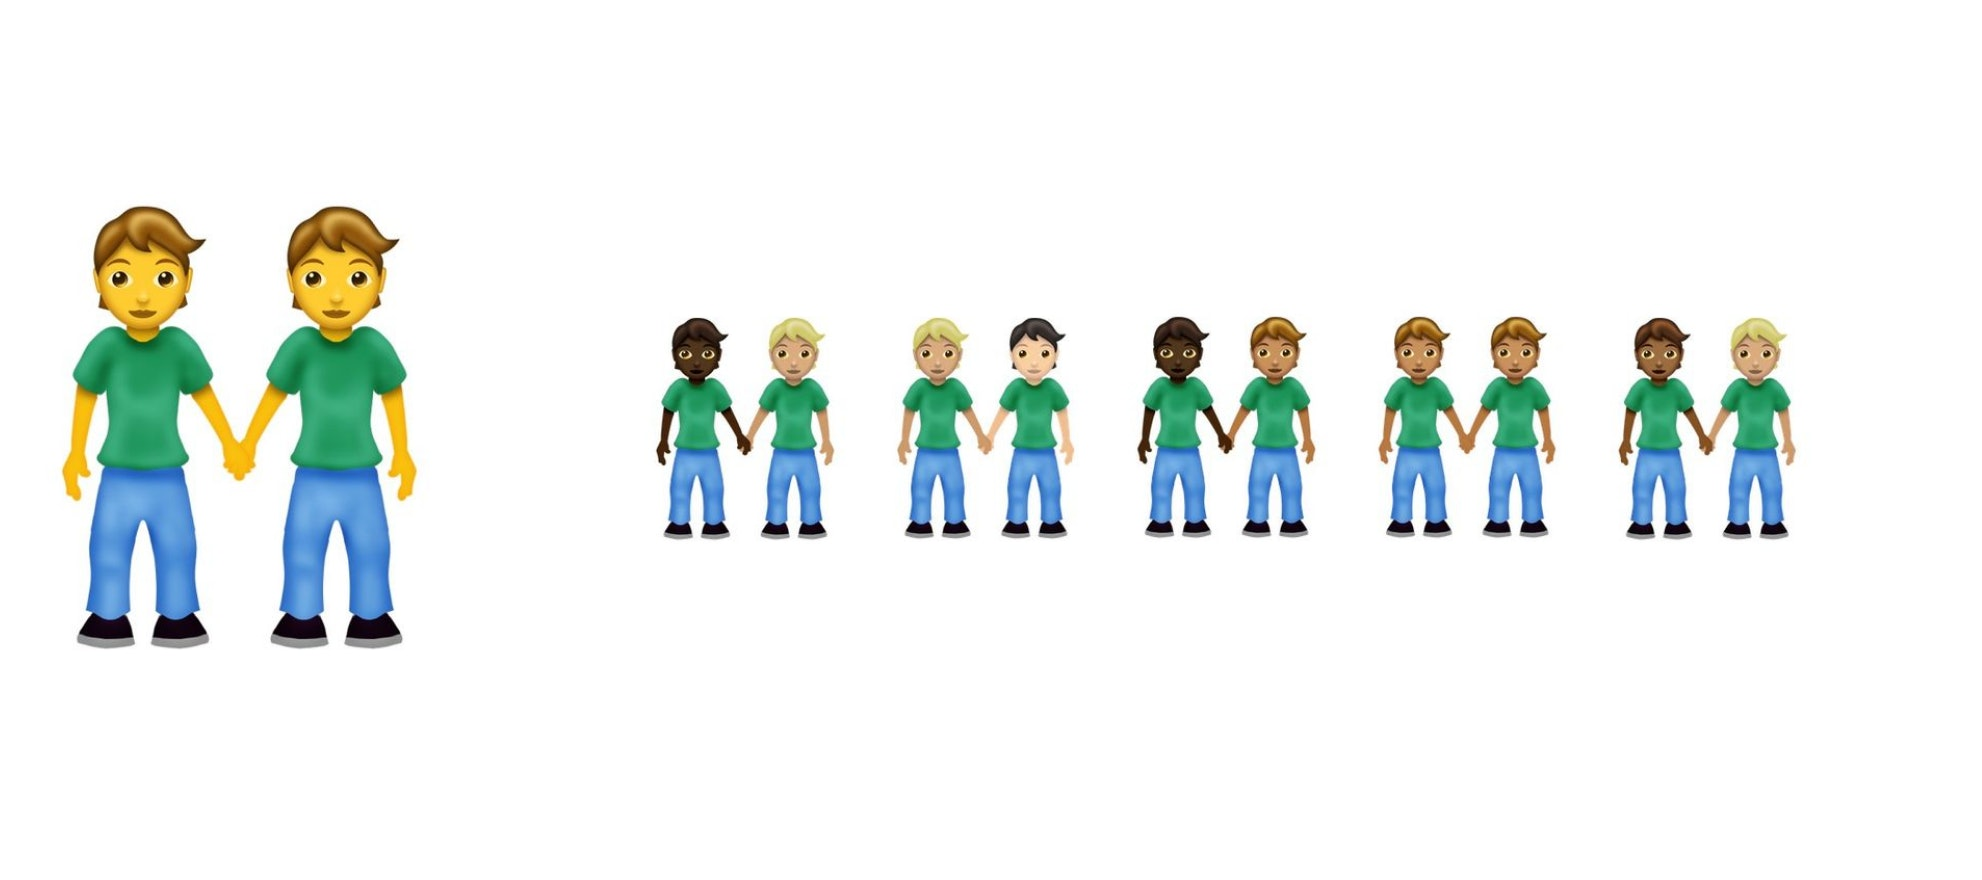 Unicode's New Emojis For 2019 Include Gender Inclusive